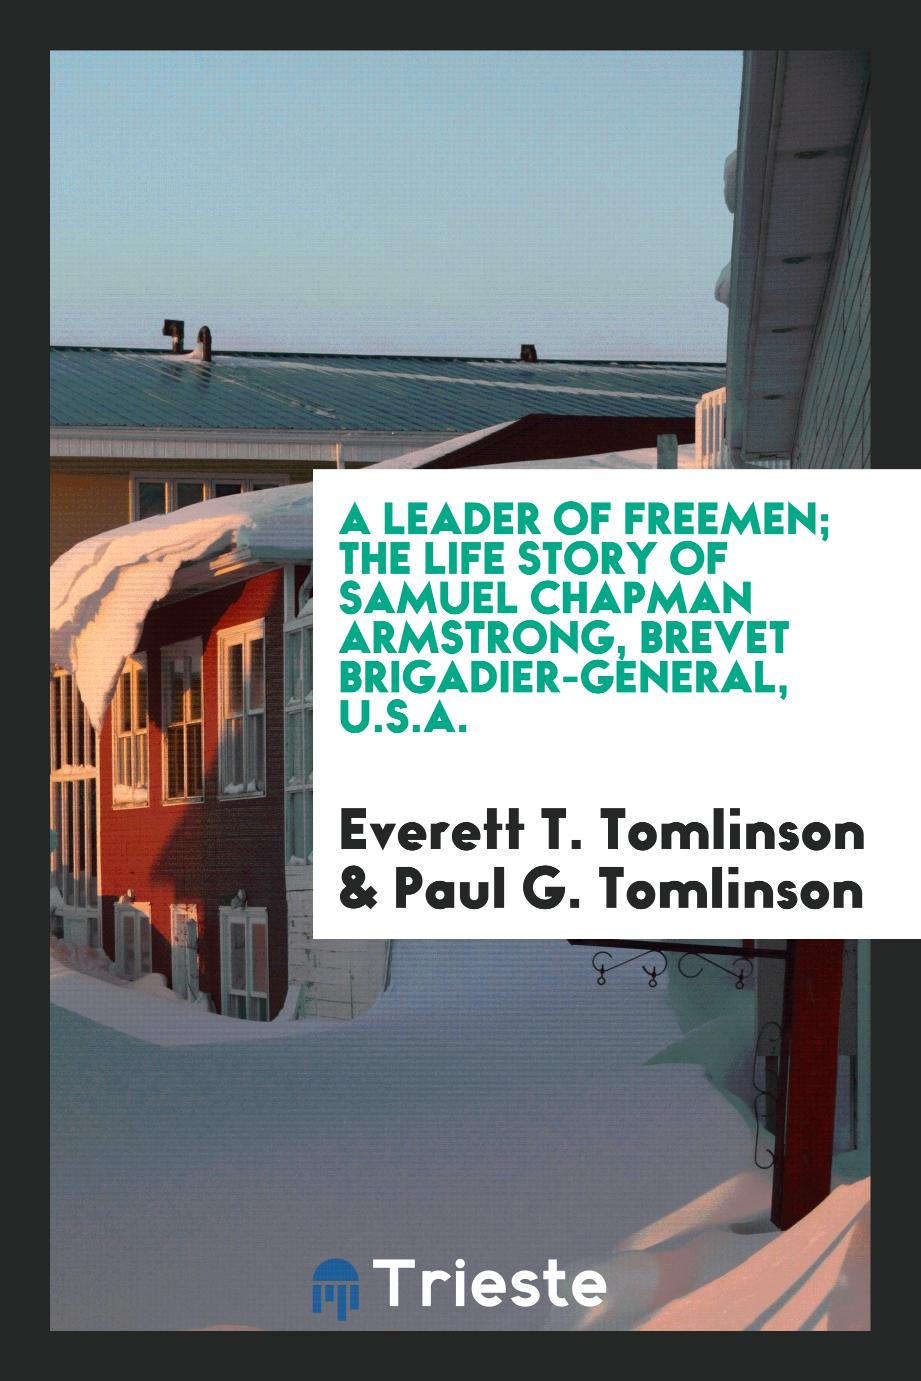 A leader of freemen; the life story of Samuel Chapman Armstrong, brevet brigadier-general, U.S.A.